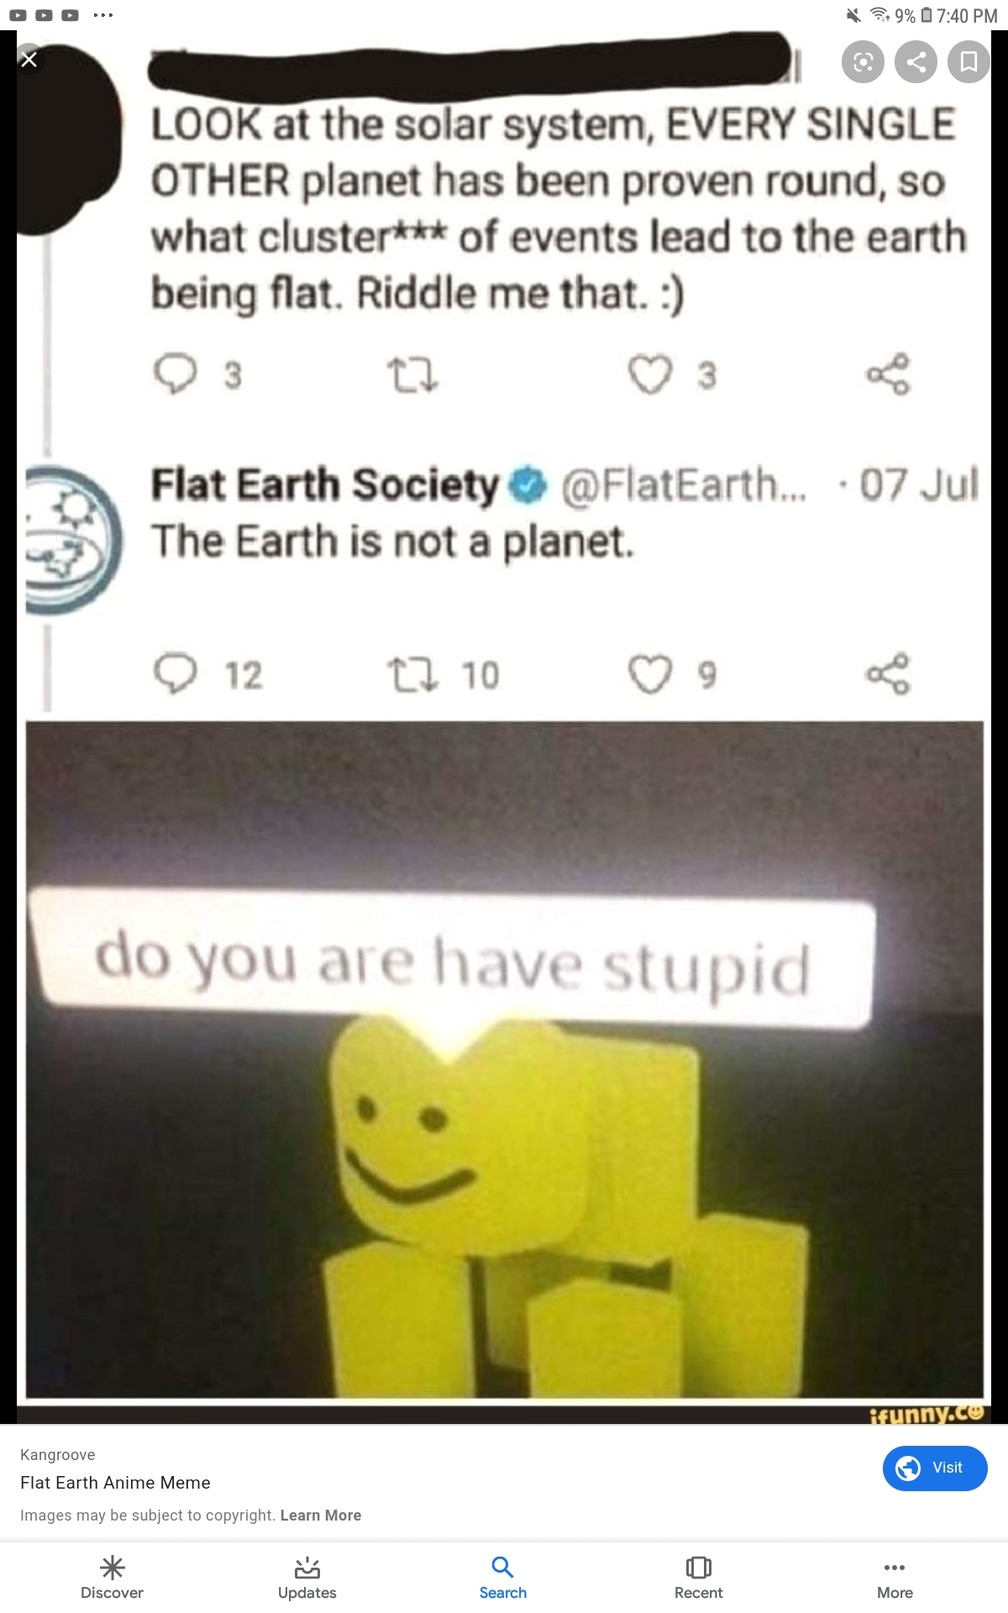 Do you are have stupid - meme